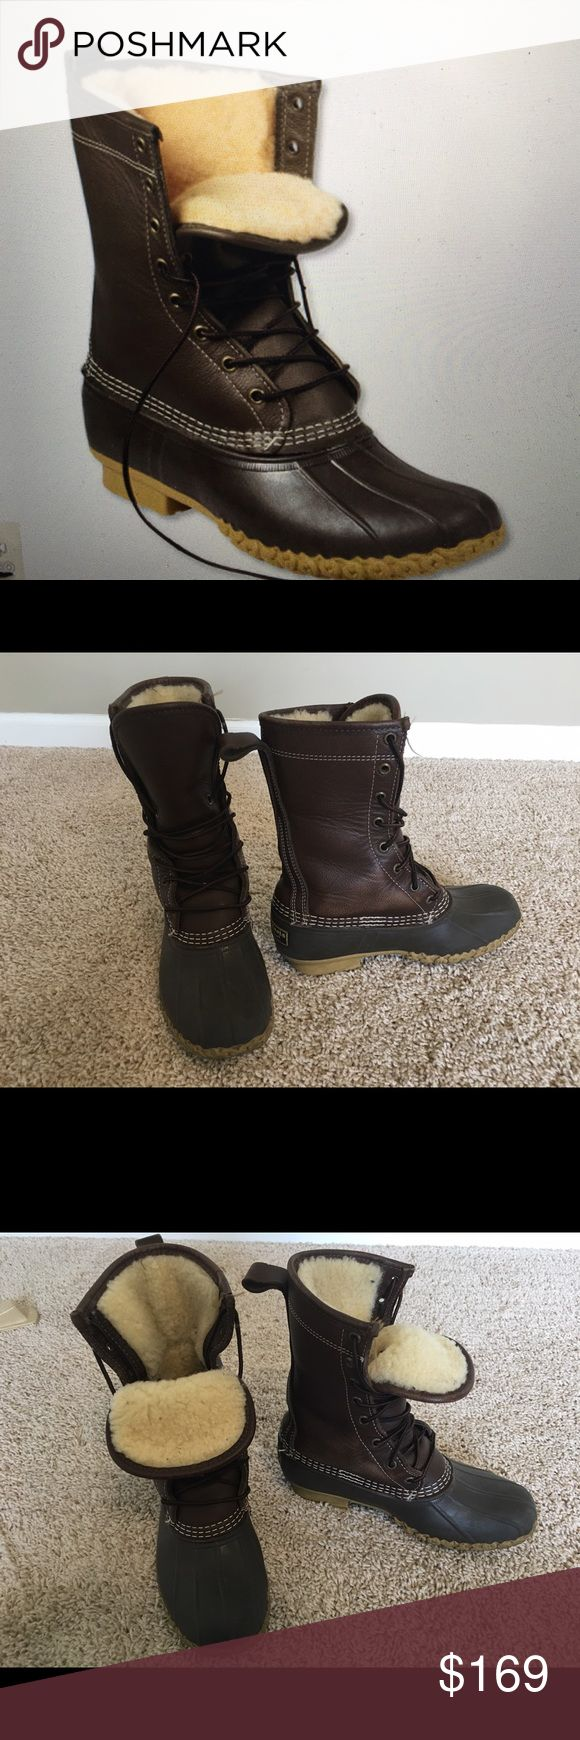 """Women's Bean Boots by L.L.bean 10"""" shearling-lined Excellent condition LL Bean premium shearling boots only worn 2-3x. Retails for $220 L.L. Bean Shoes Winter & Rain Boots"""